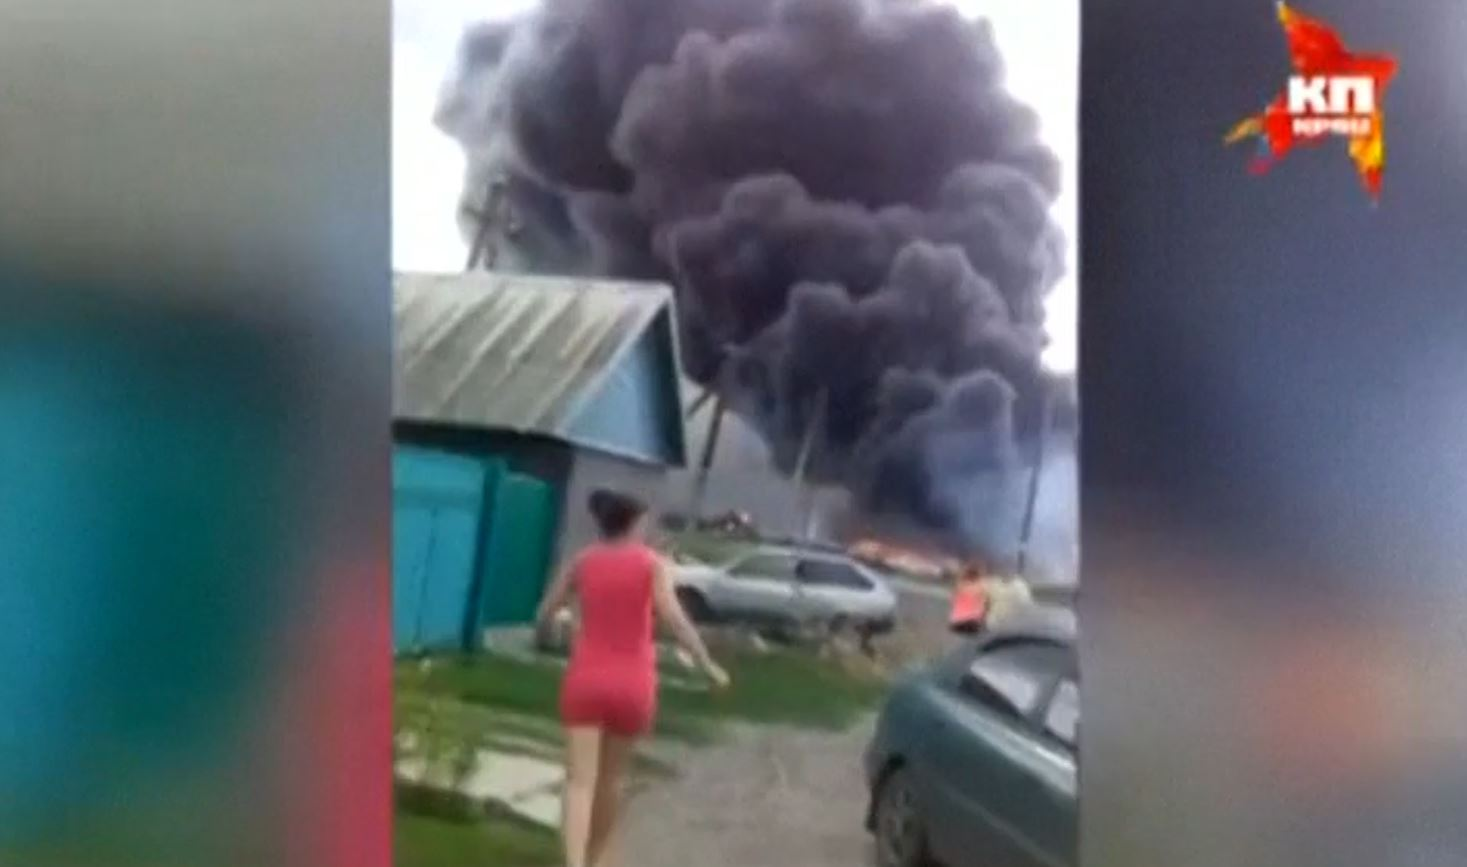 New Amateur Video Shows Aftermath of Malaysia Airlines MH17 Crash